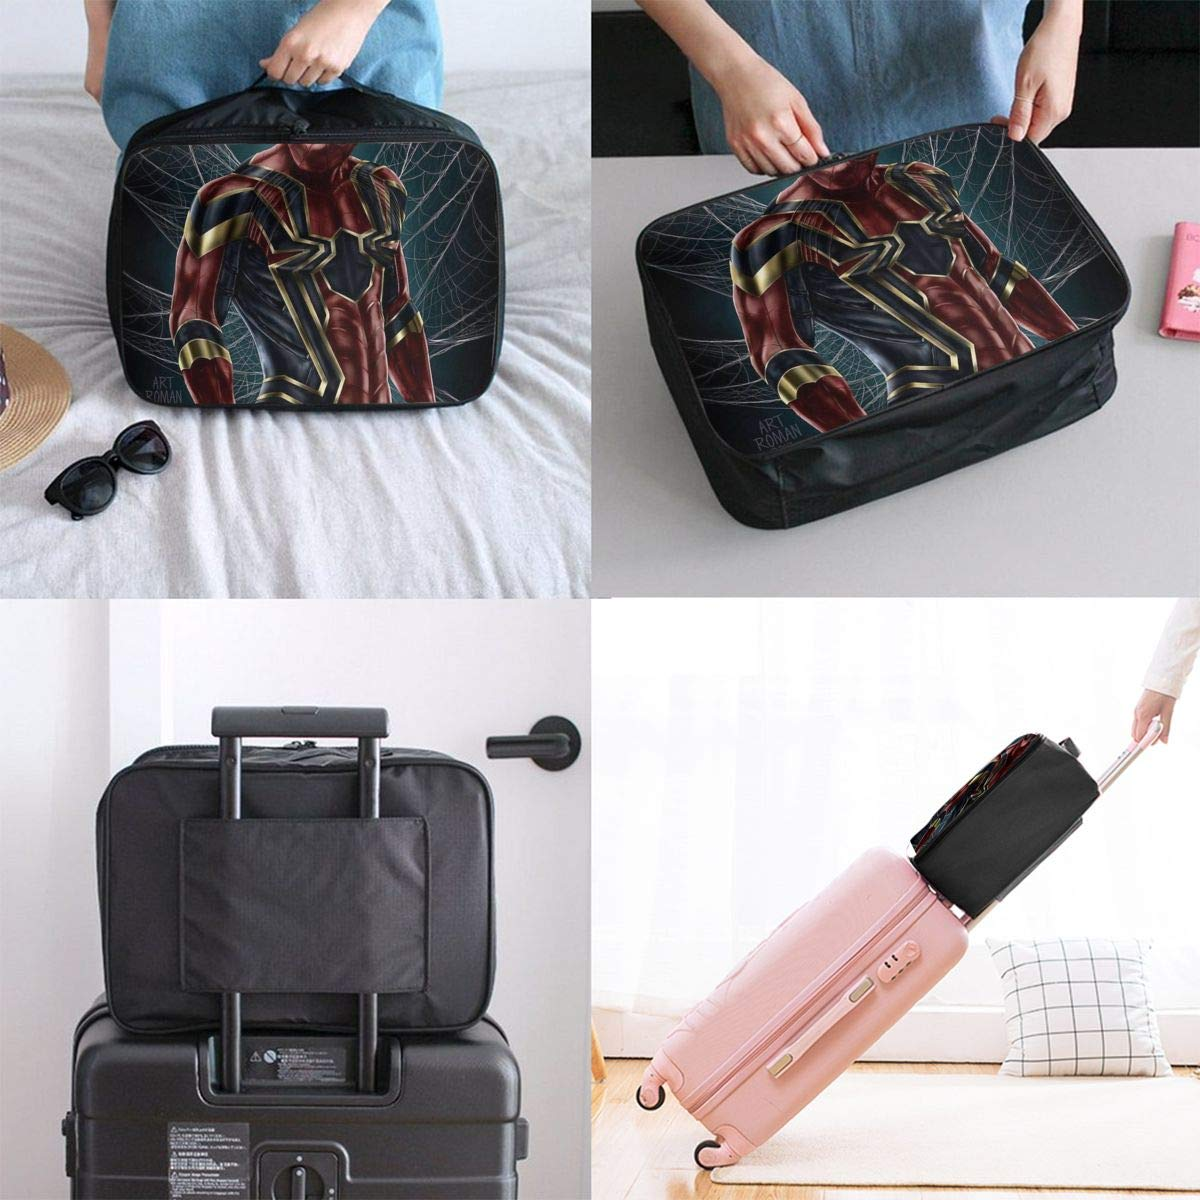 Sp-iderm-an Personalize Design Waterproof Portable Trolley Handle Luggage Bag Travel Bag